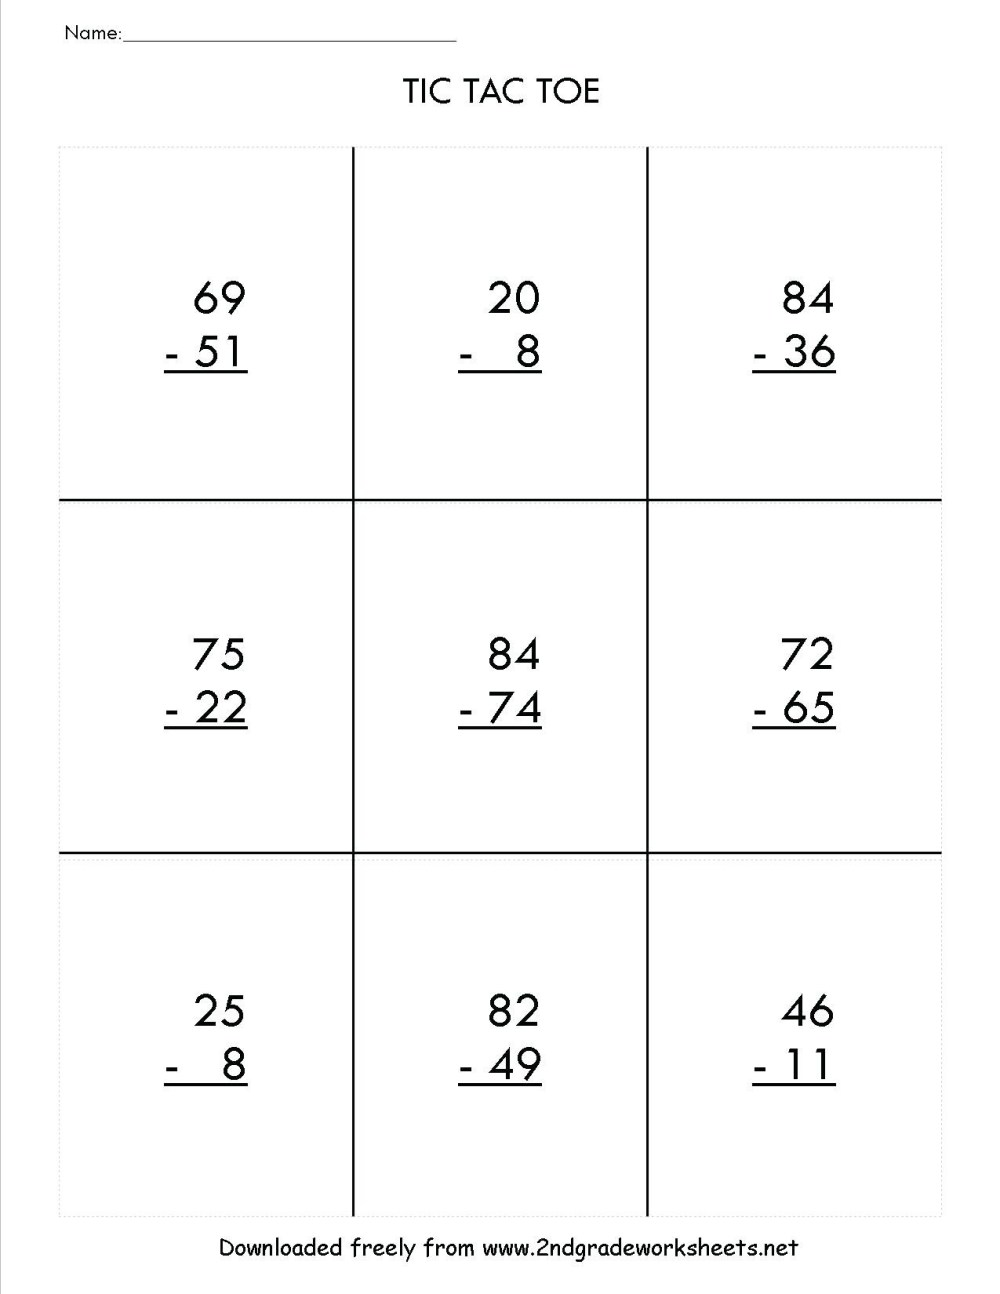 medium resolution of 3 Free Math Worksheets Second Grade 2 Subtraction Subtract Regroup Across  Zeros - apocalomegaproductions.com